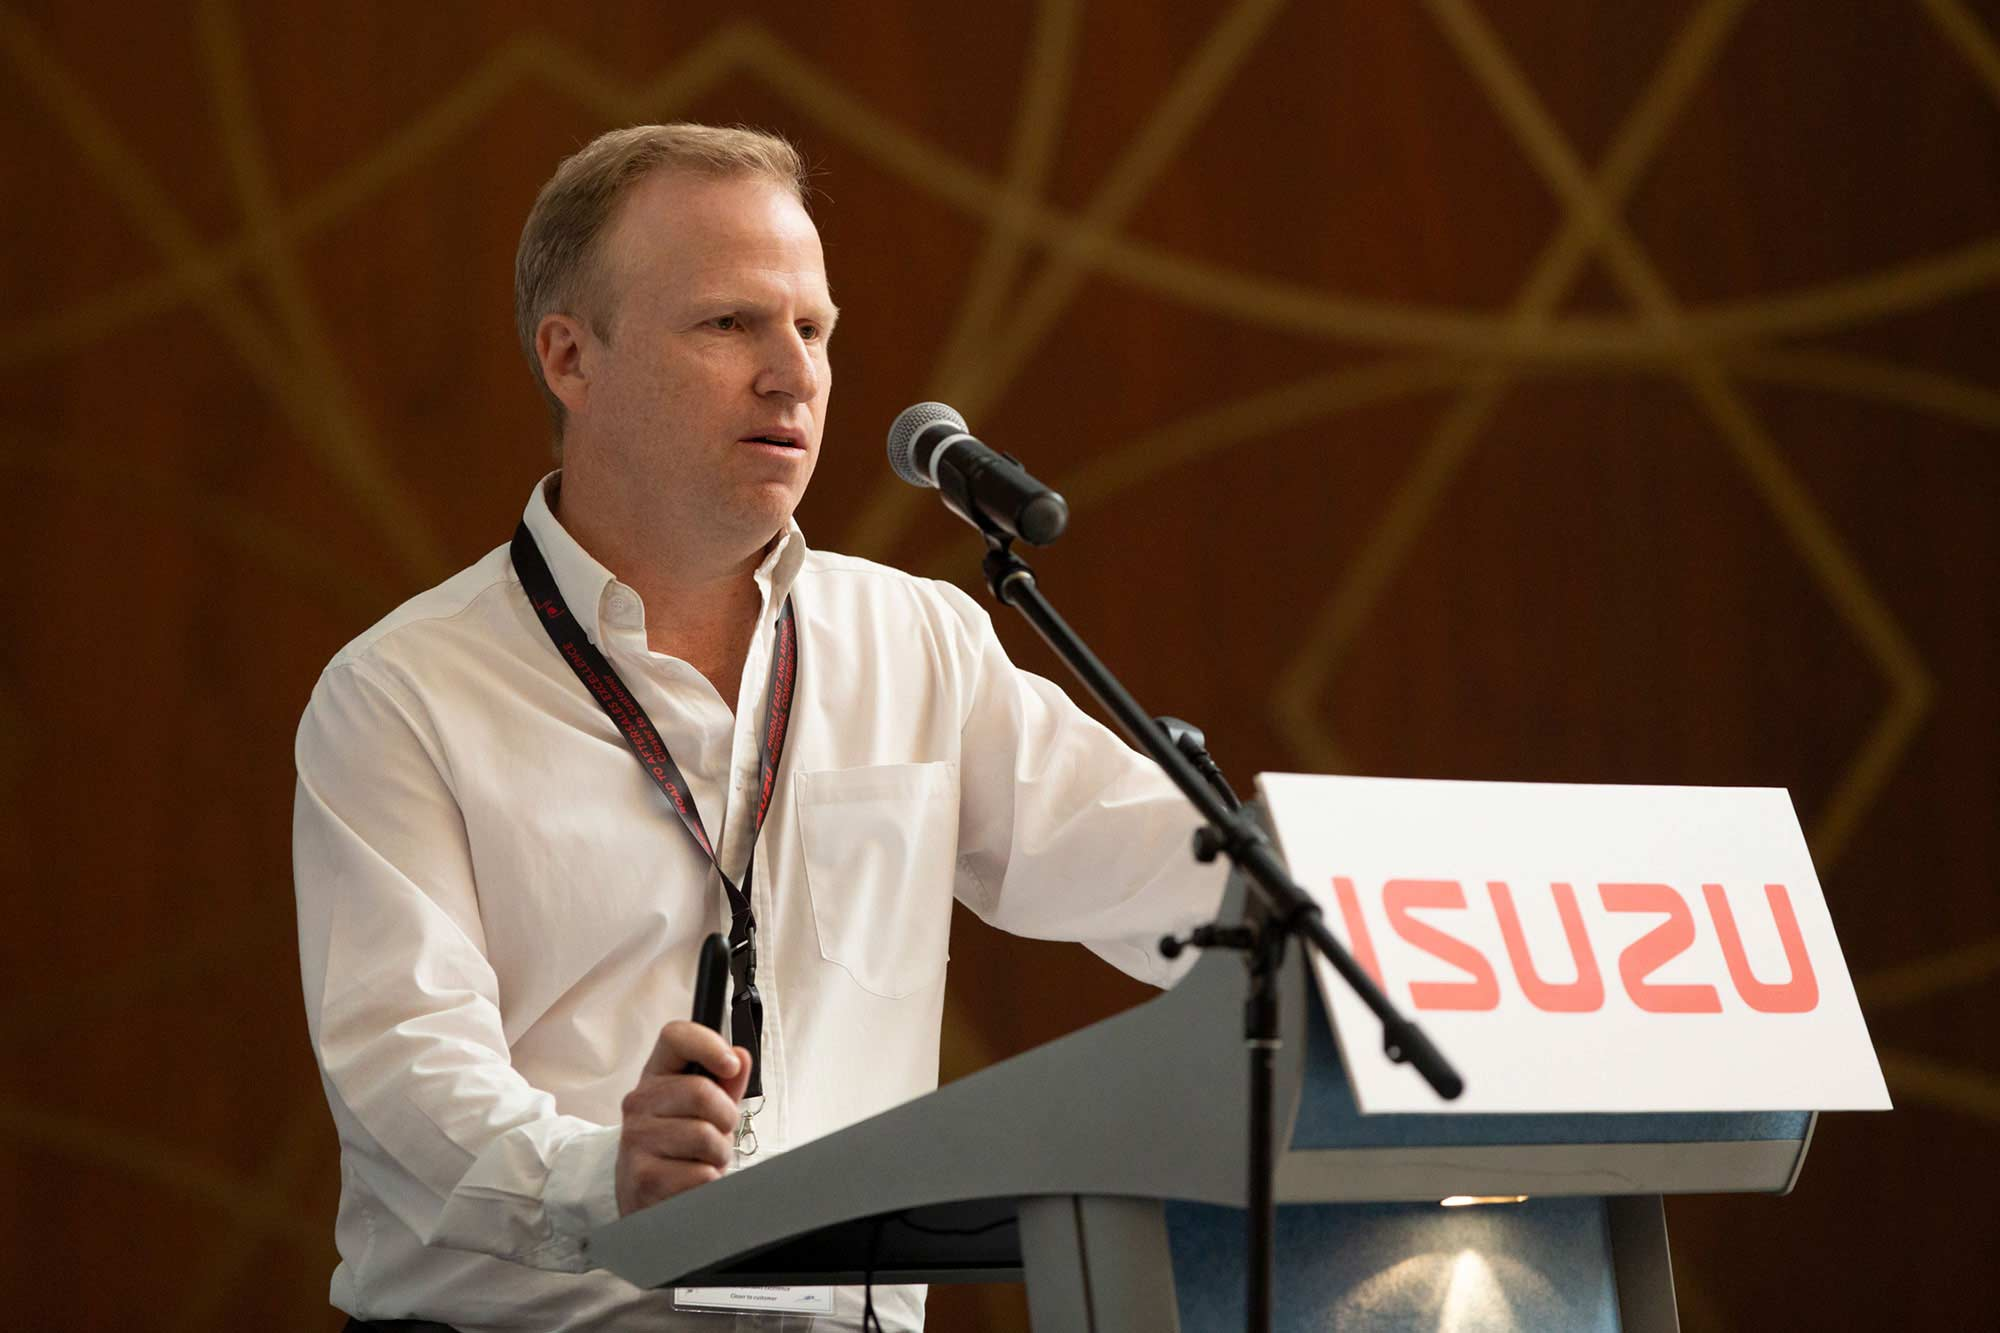 Isuzu Middle East and Africa Regional Conference 2020 Speech